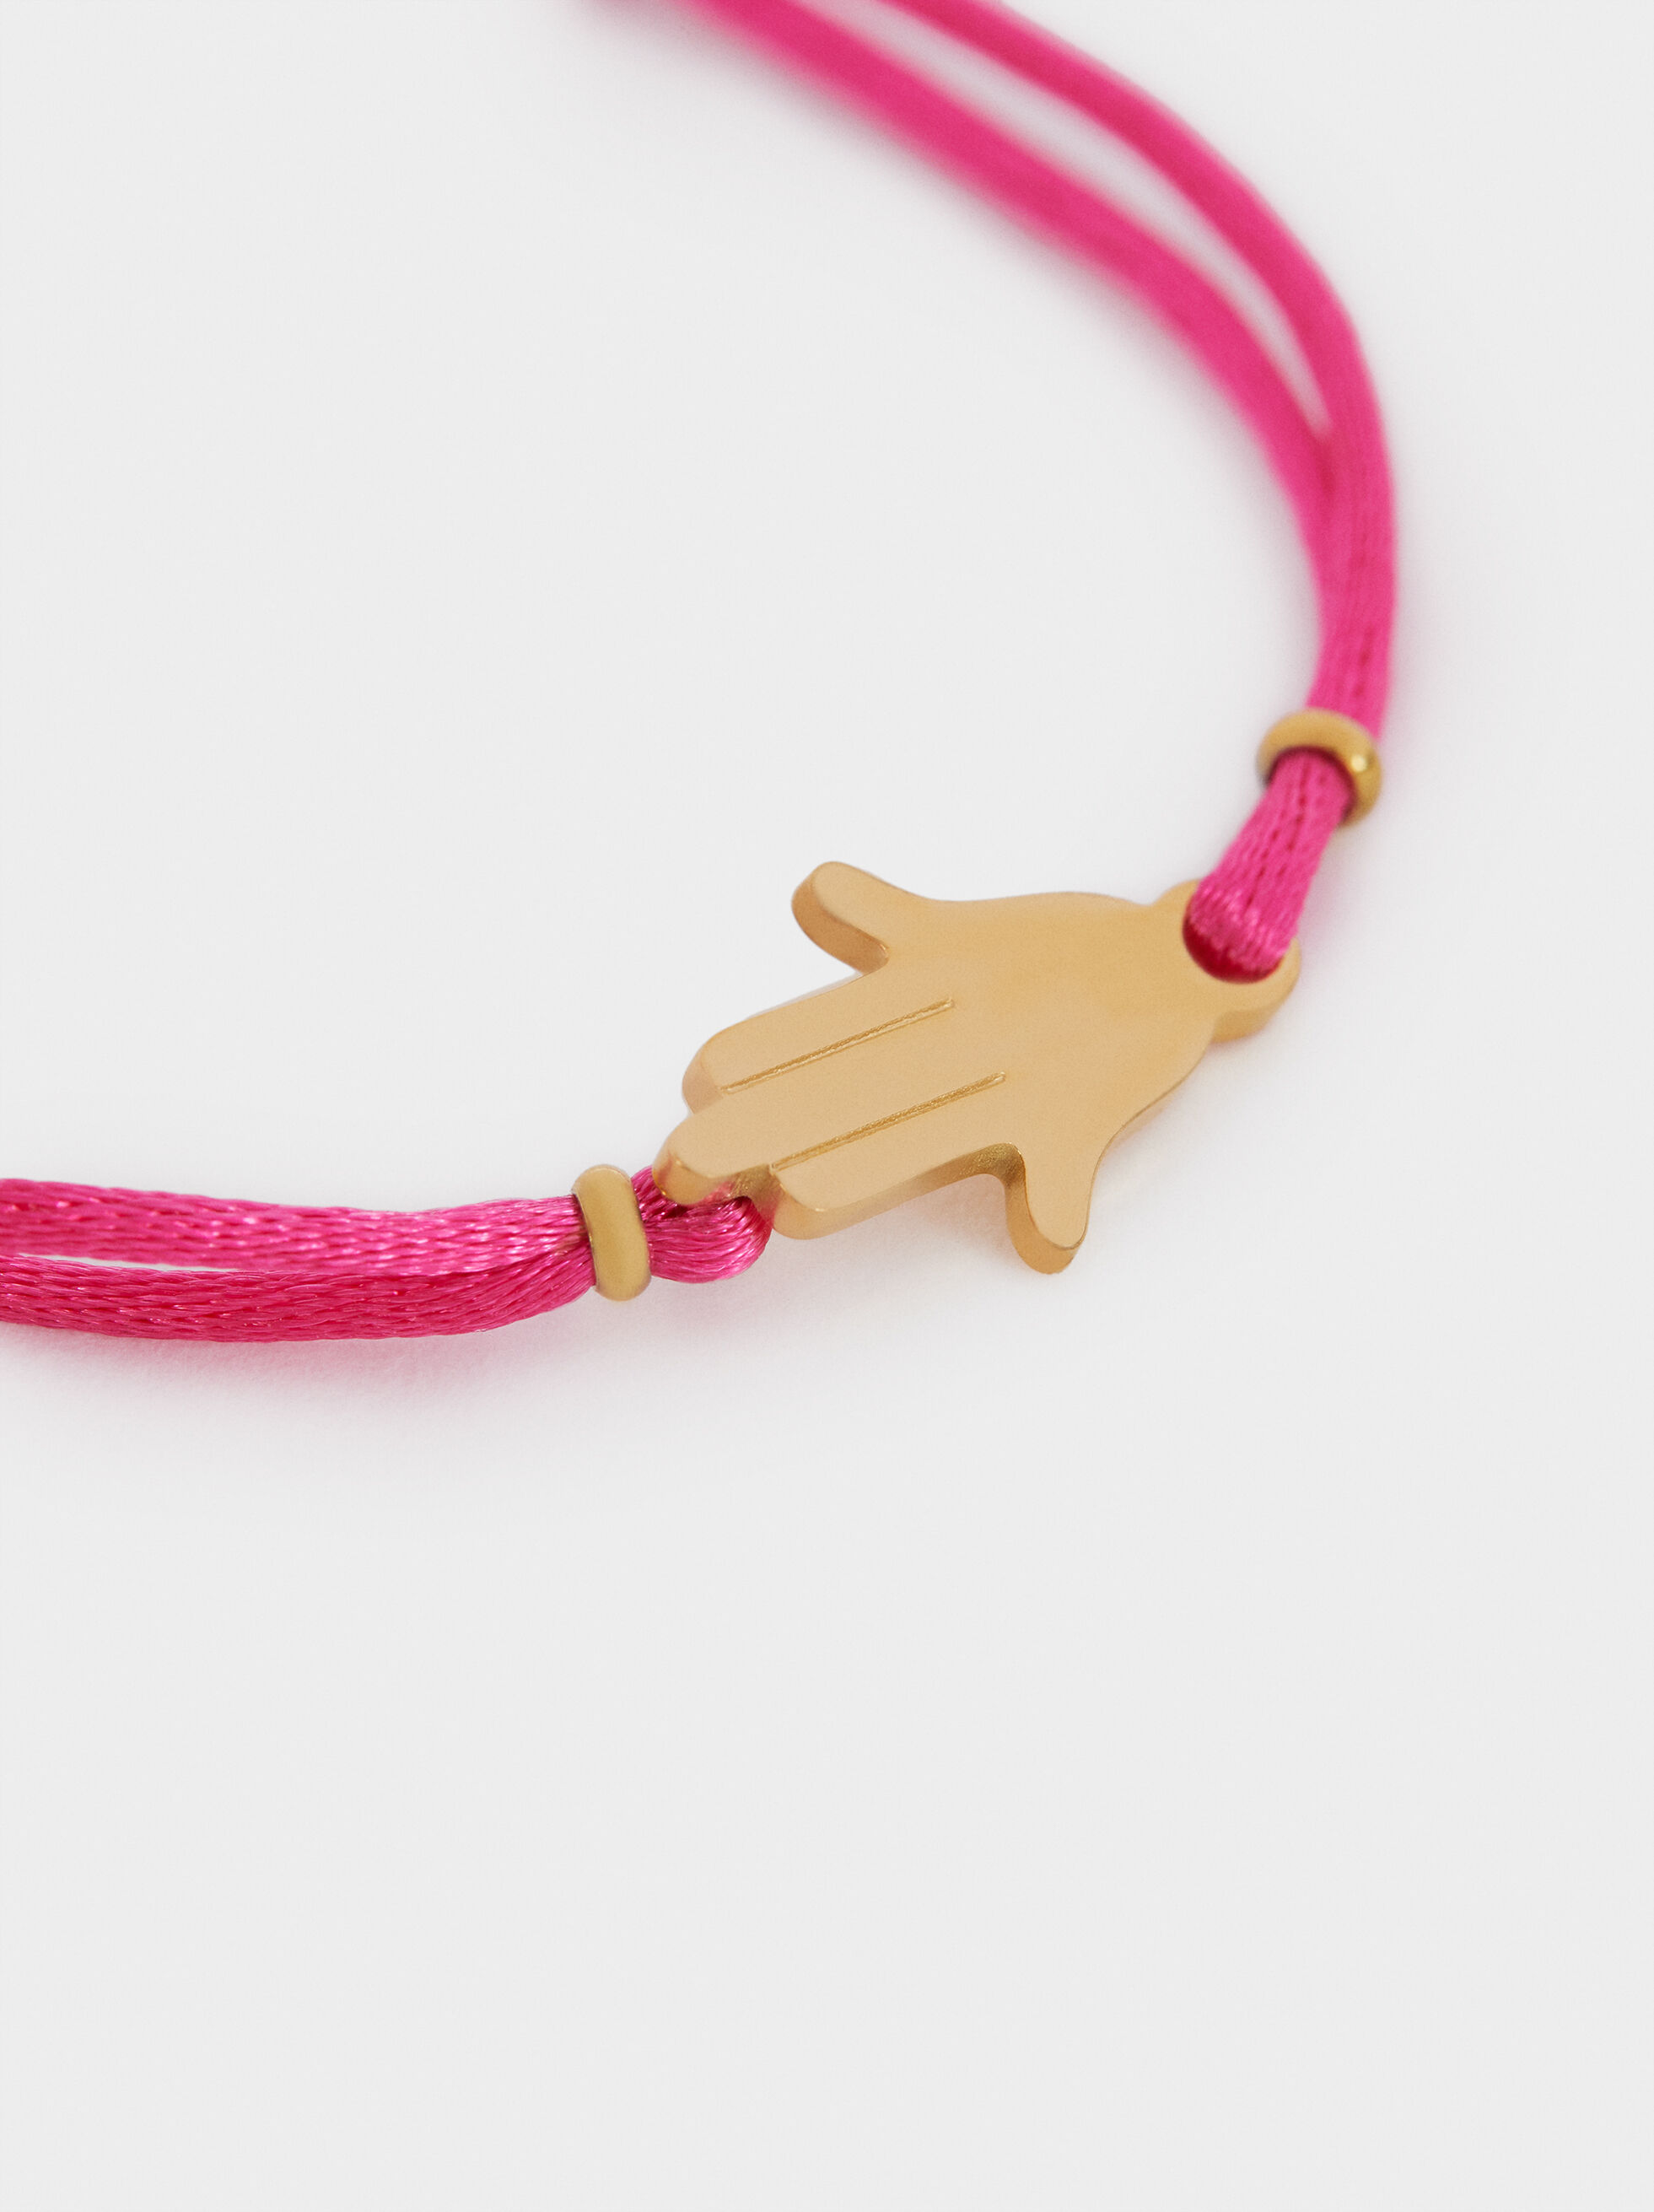 Adjustable Cord Bracelet With Hand Charm, Pink, hi-res